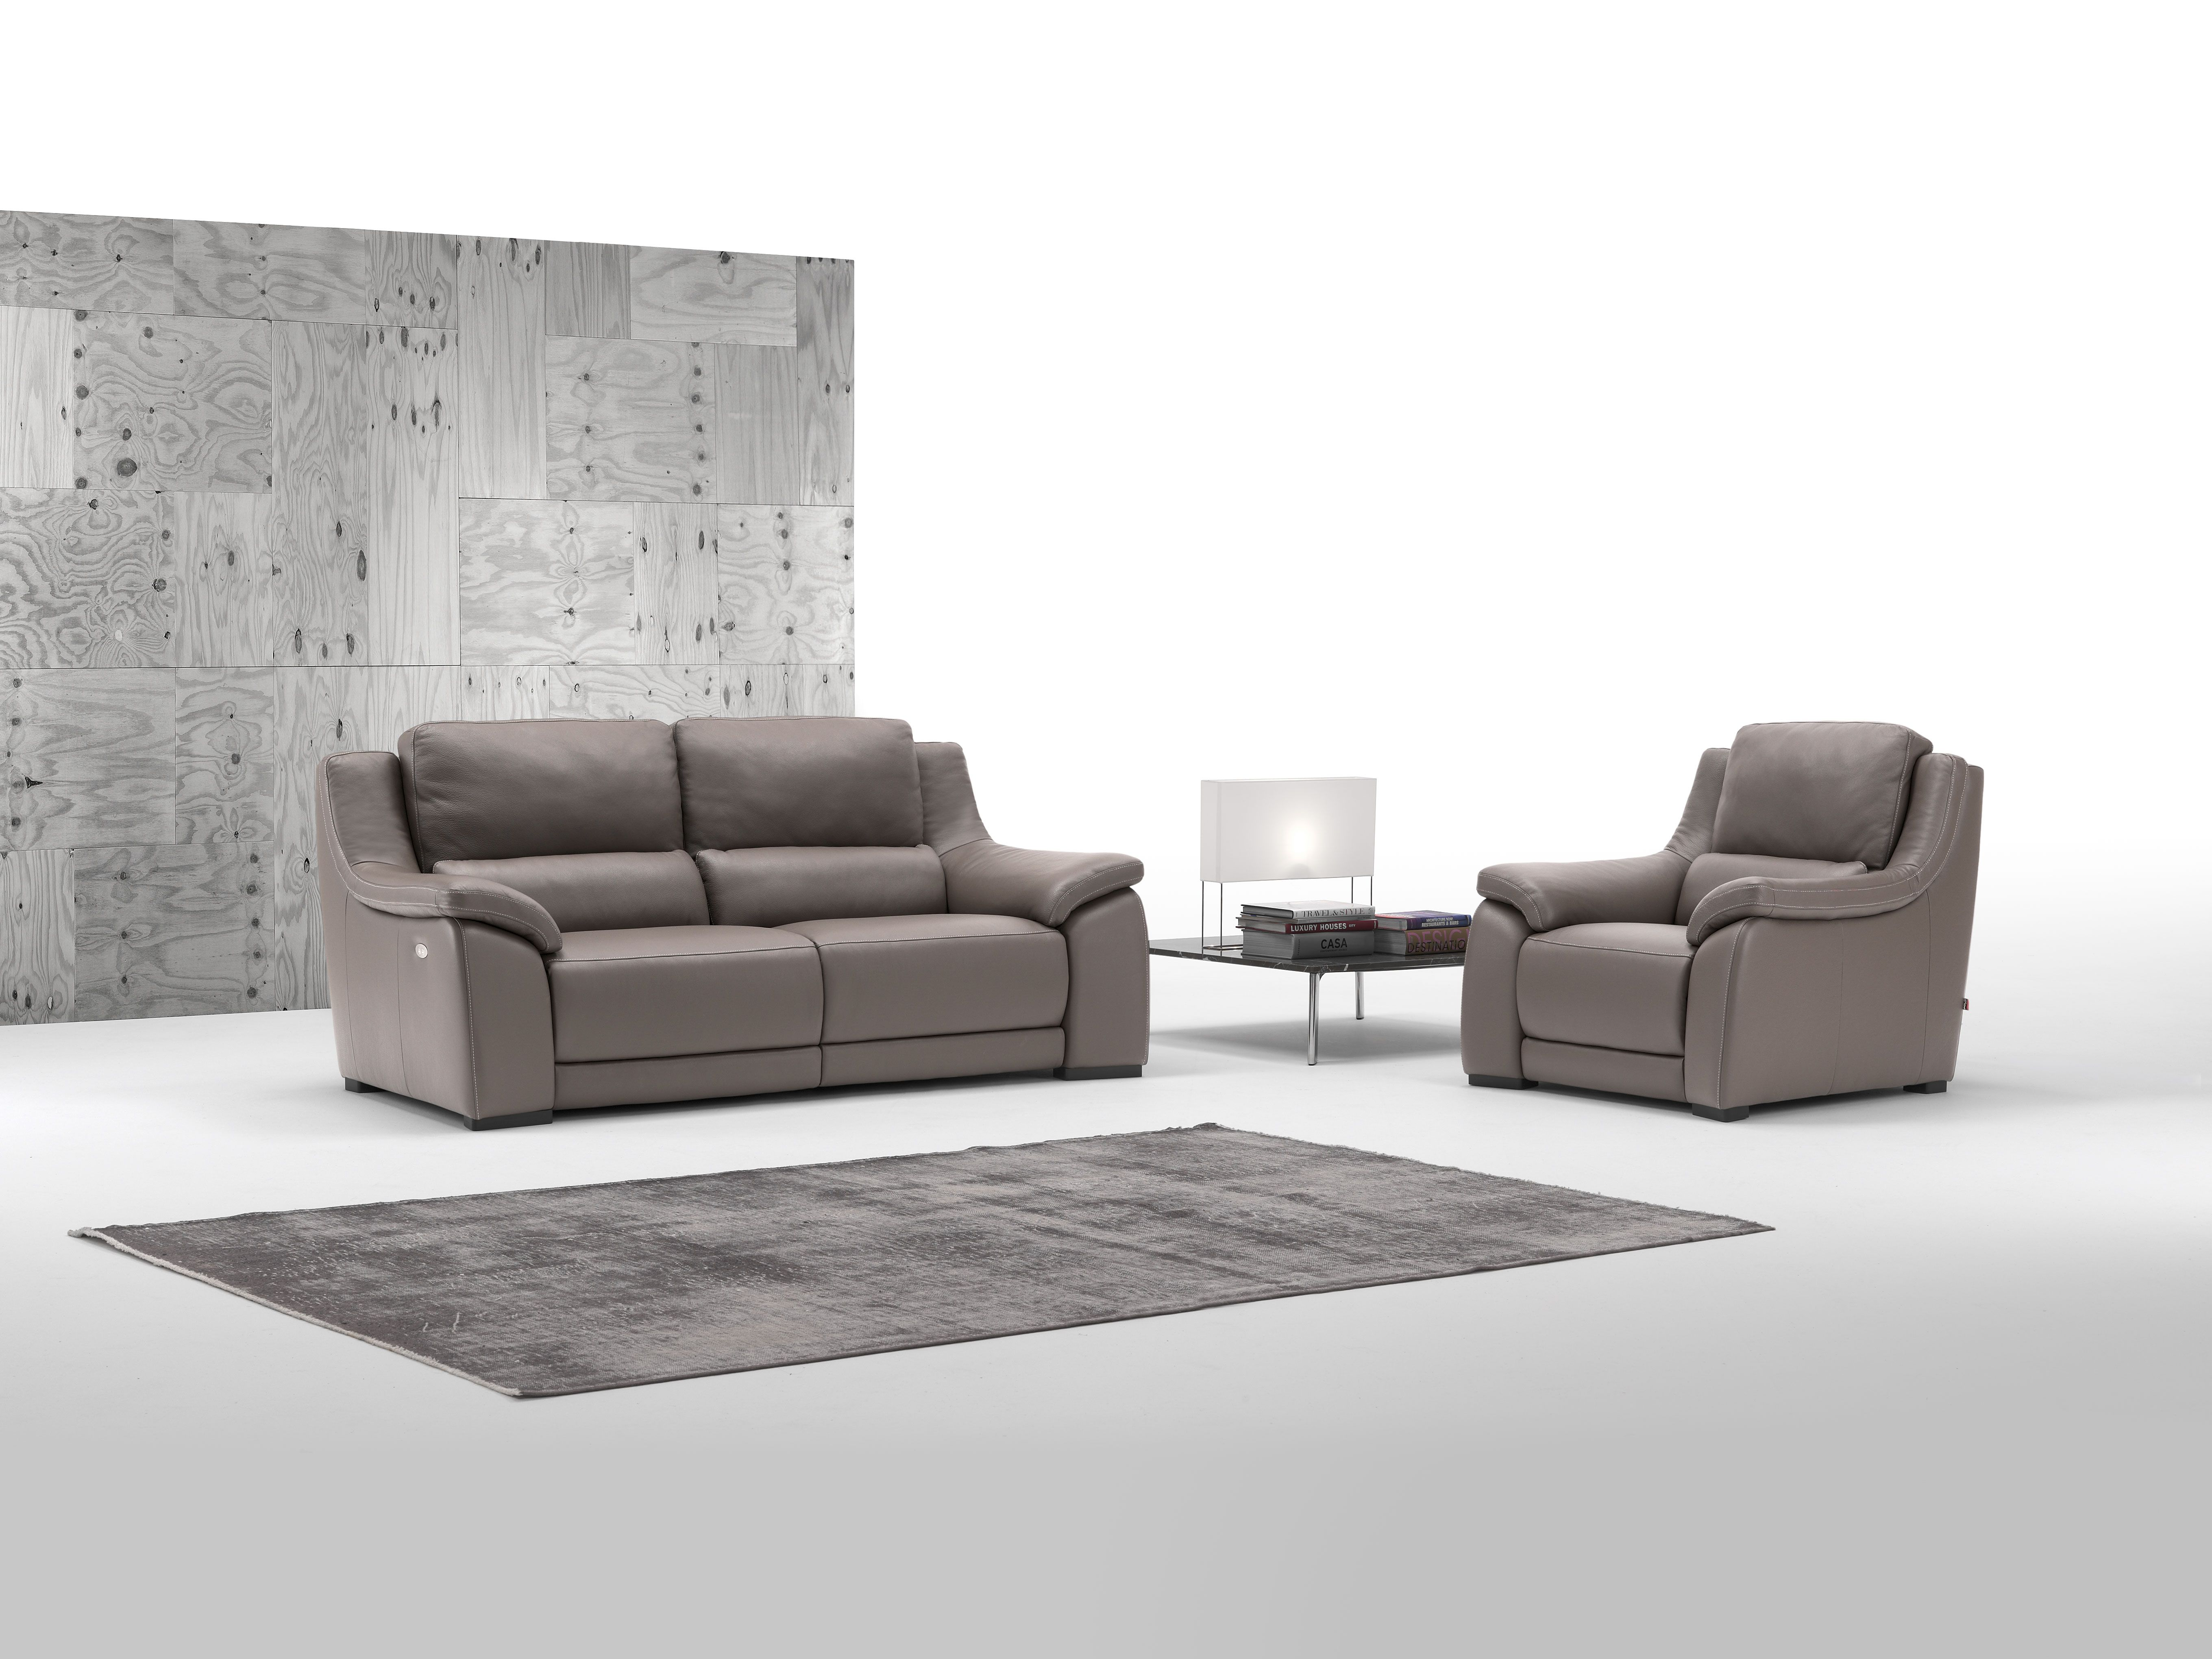 Fabio And Co Is Proud To Offer You 100 Genuine Italian Sofas Over 200 Exclusive Models To Choose Luxury Sofa Italian Leather Sofa Italian Furniture Modern